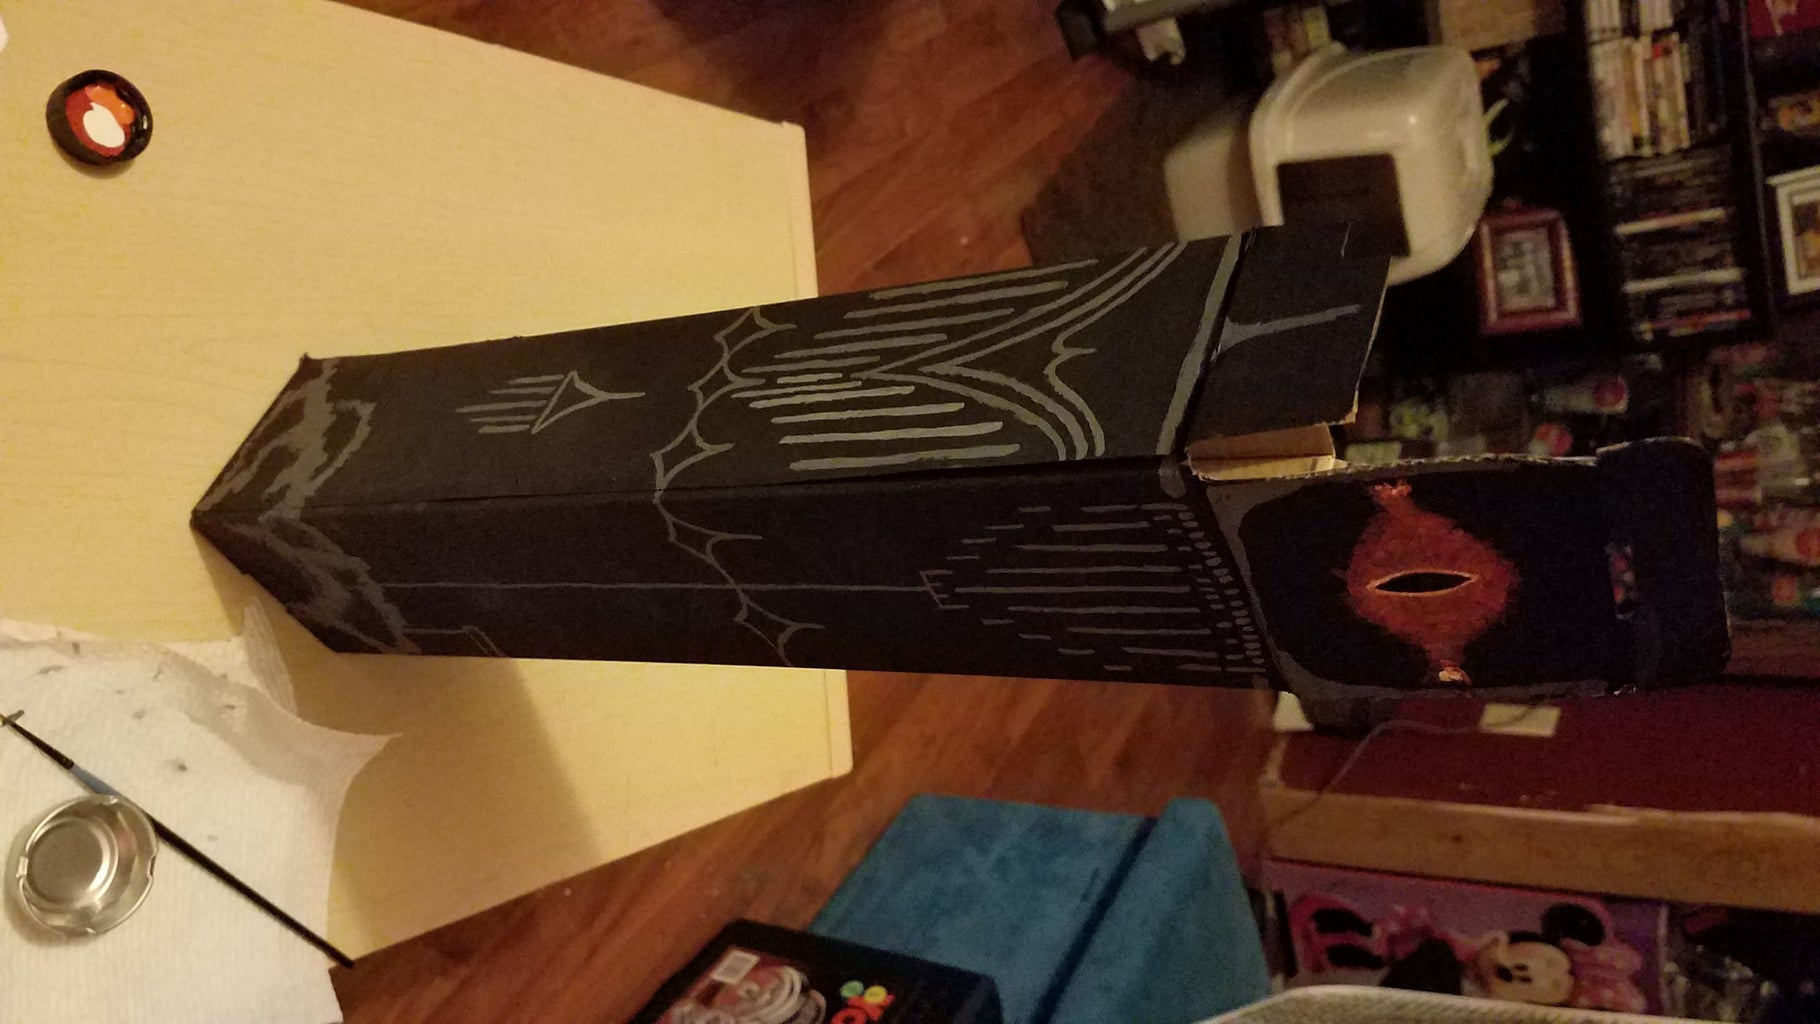 Folding Tabletop Dice Tower